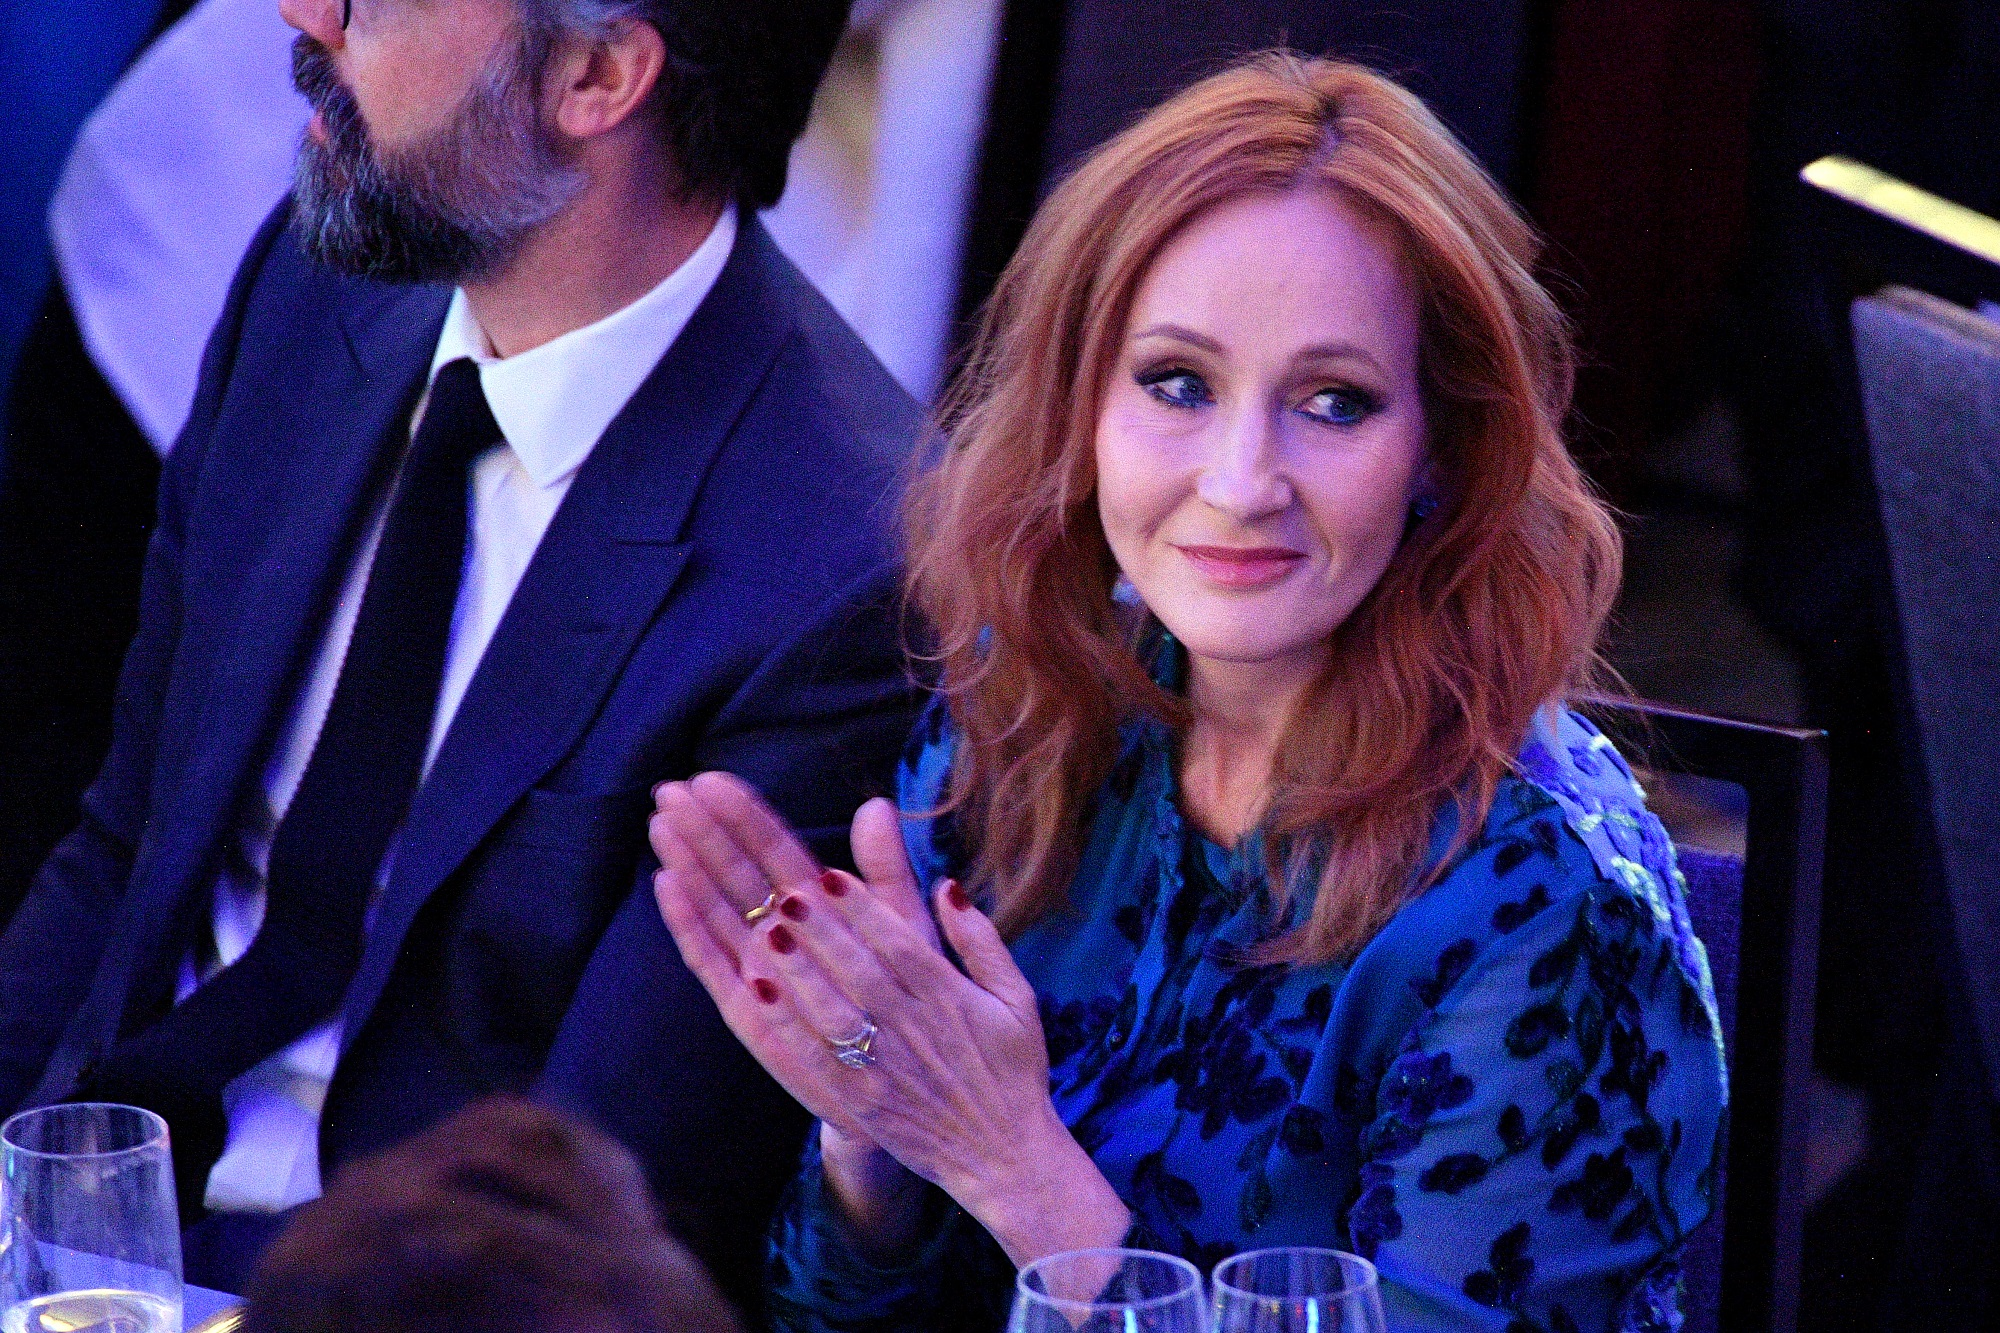 J.K. Rowling is not involved in Hogwarts Legacy